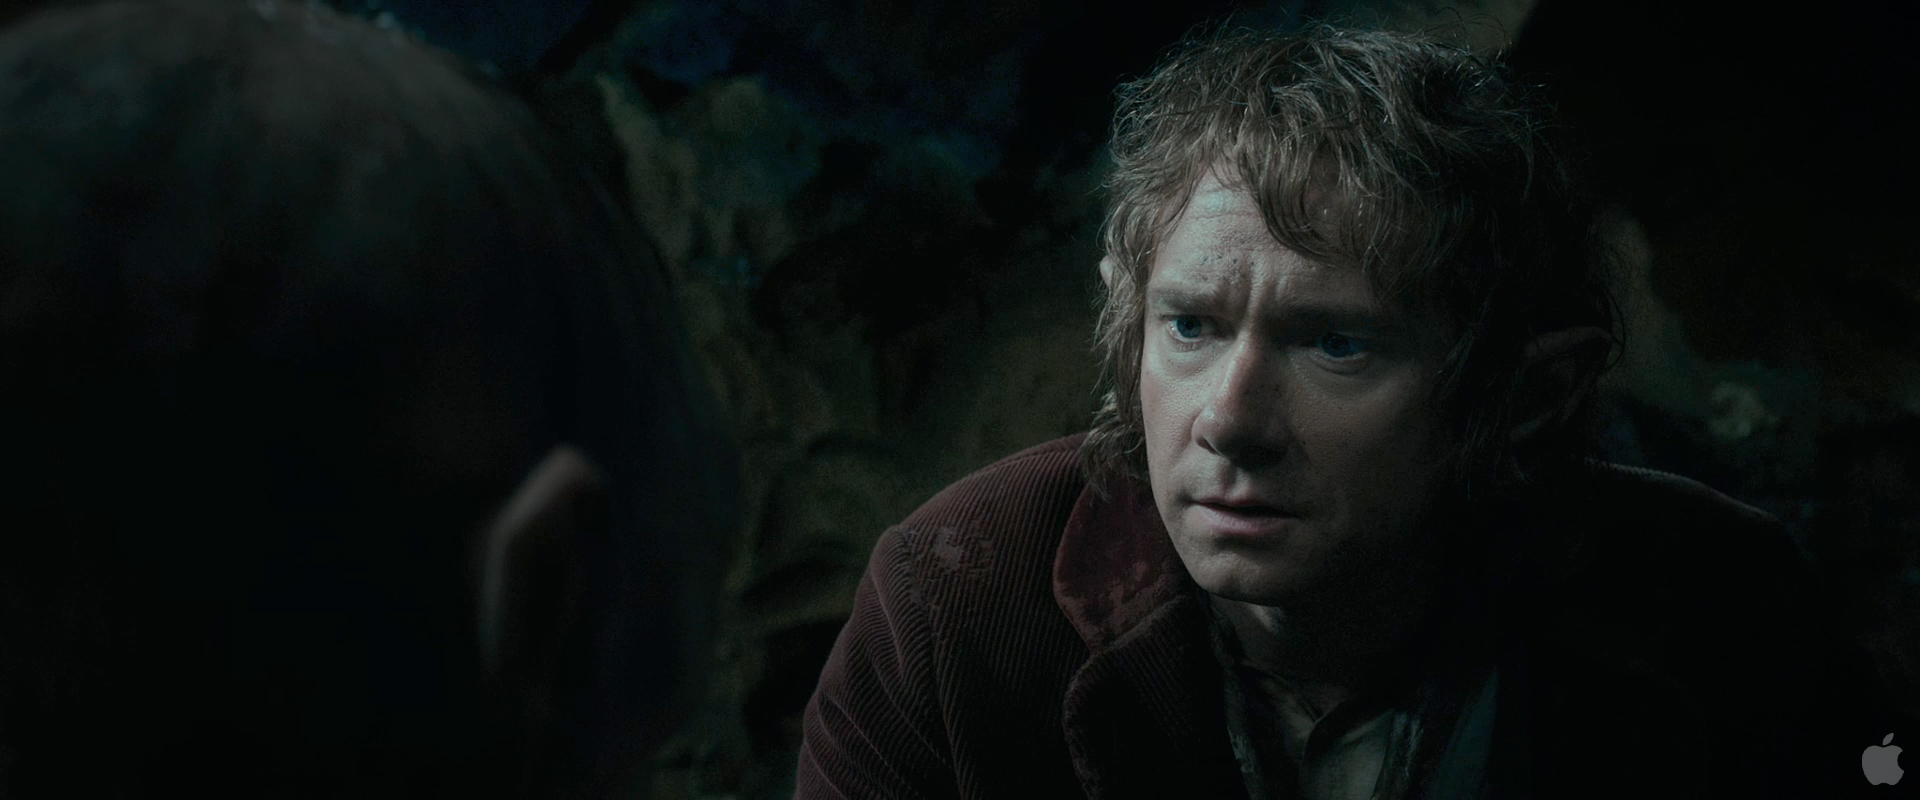 character analysis of bilbo baggins in the hobbit By the main characters in the hobbit  character, bilbo baggins (martin  freeman), as he journeys with the  have students name the story's main  characters.